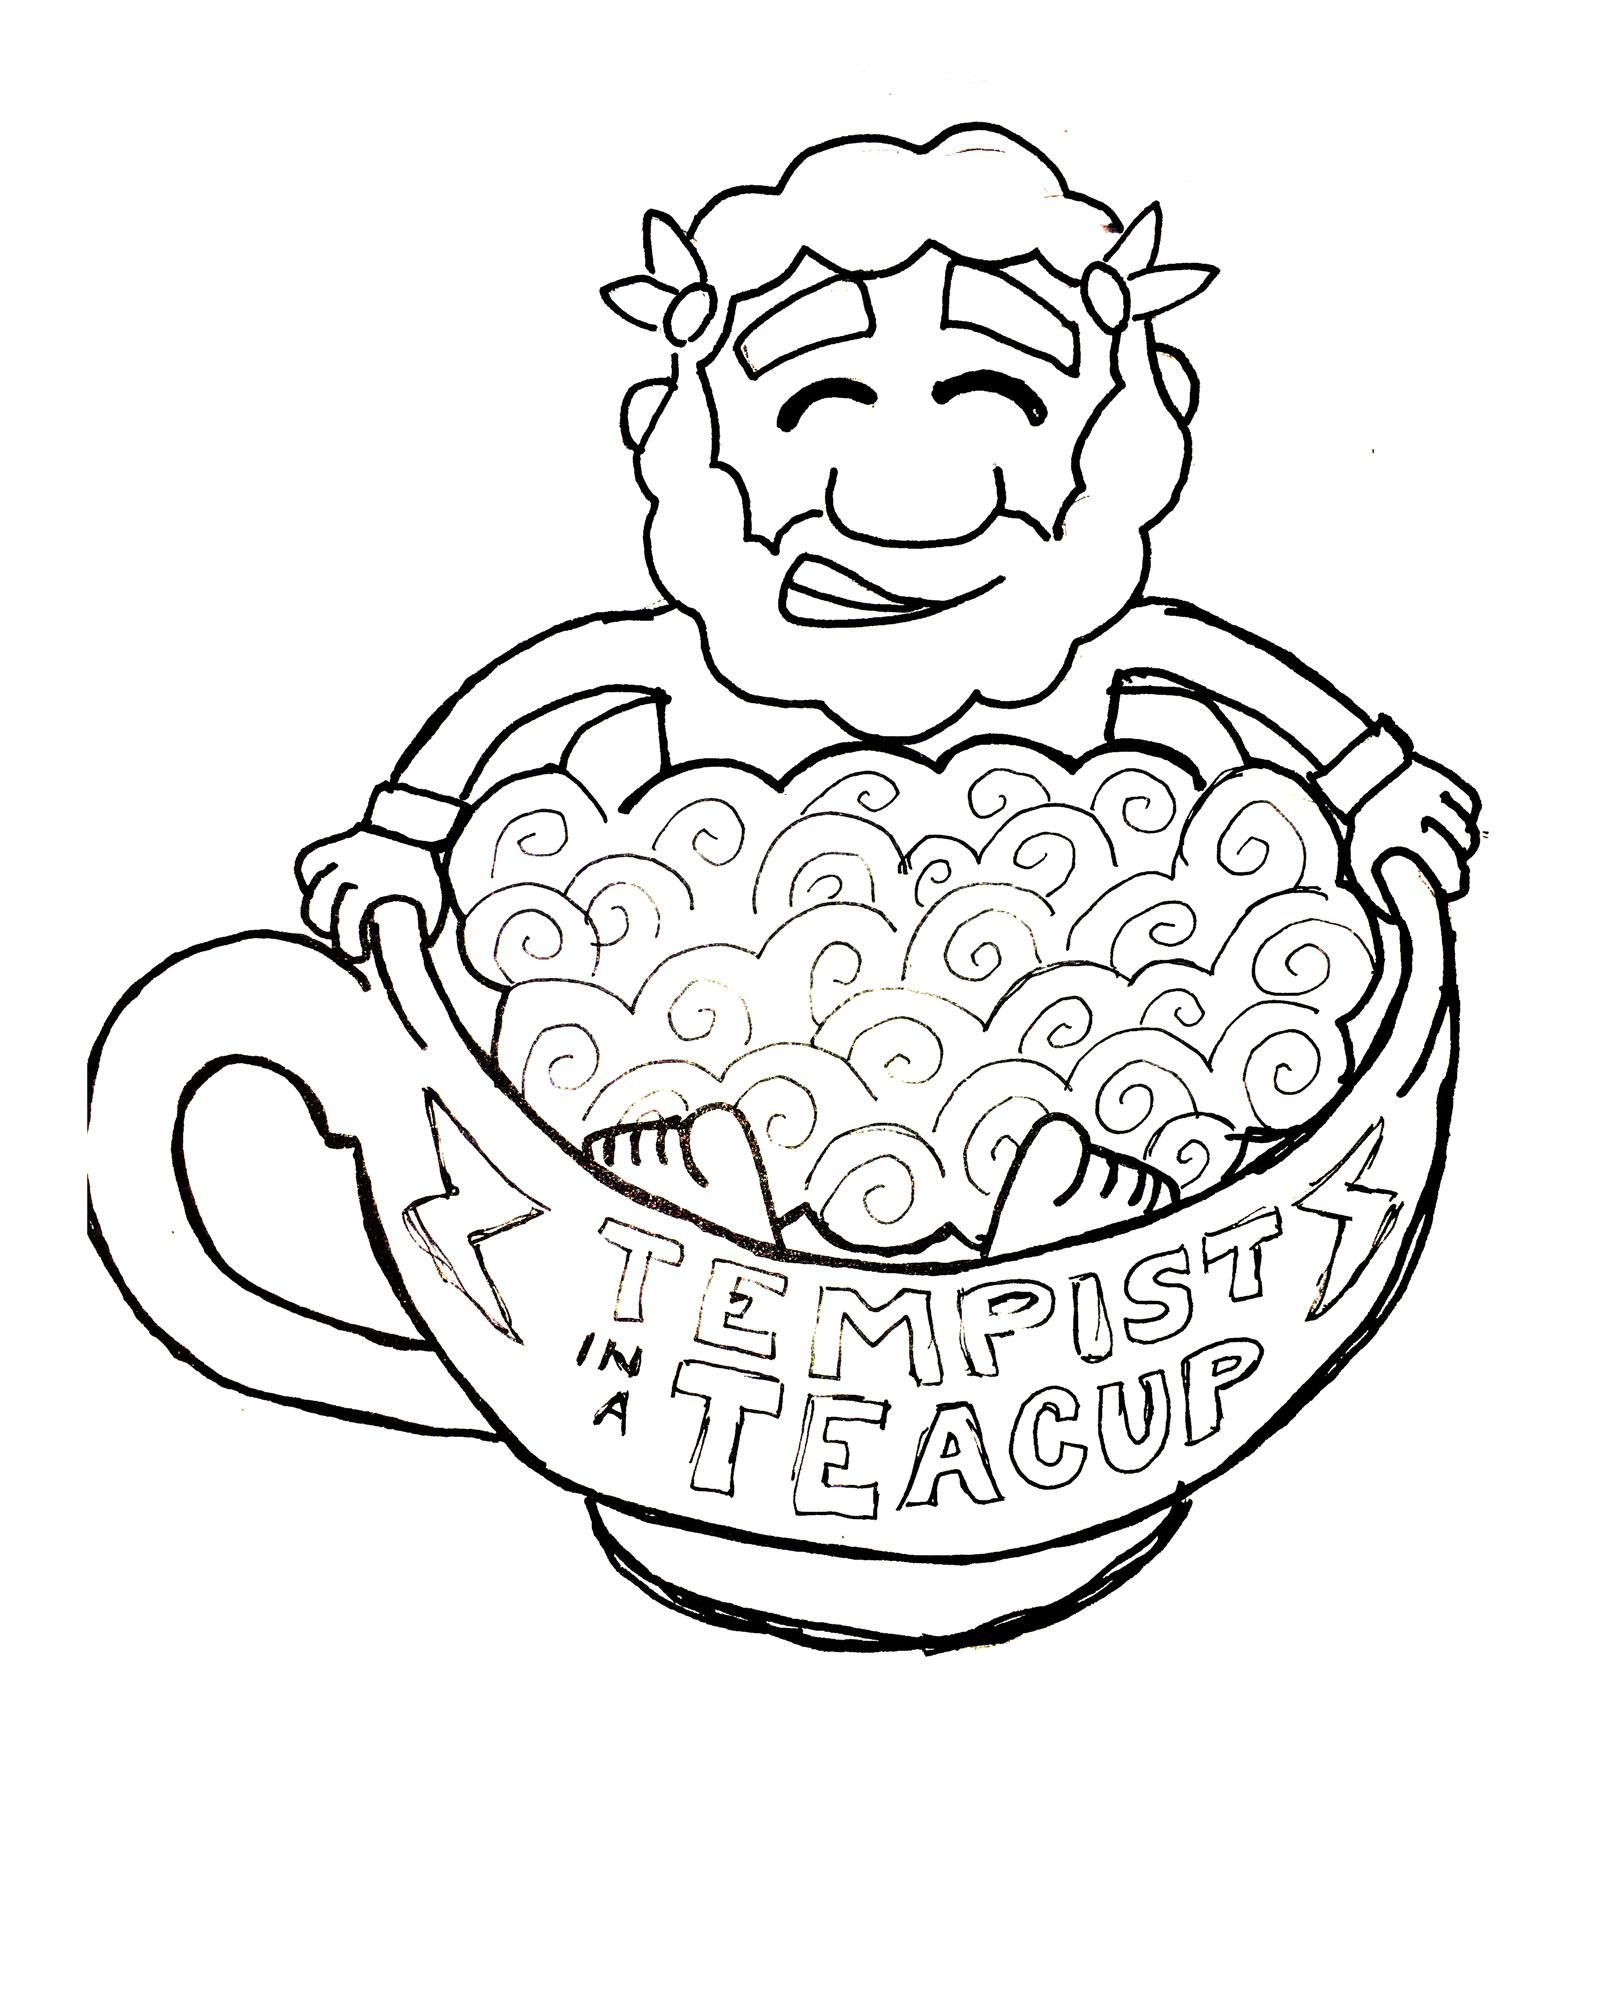 Drawn teacup tempest in #13